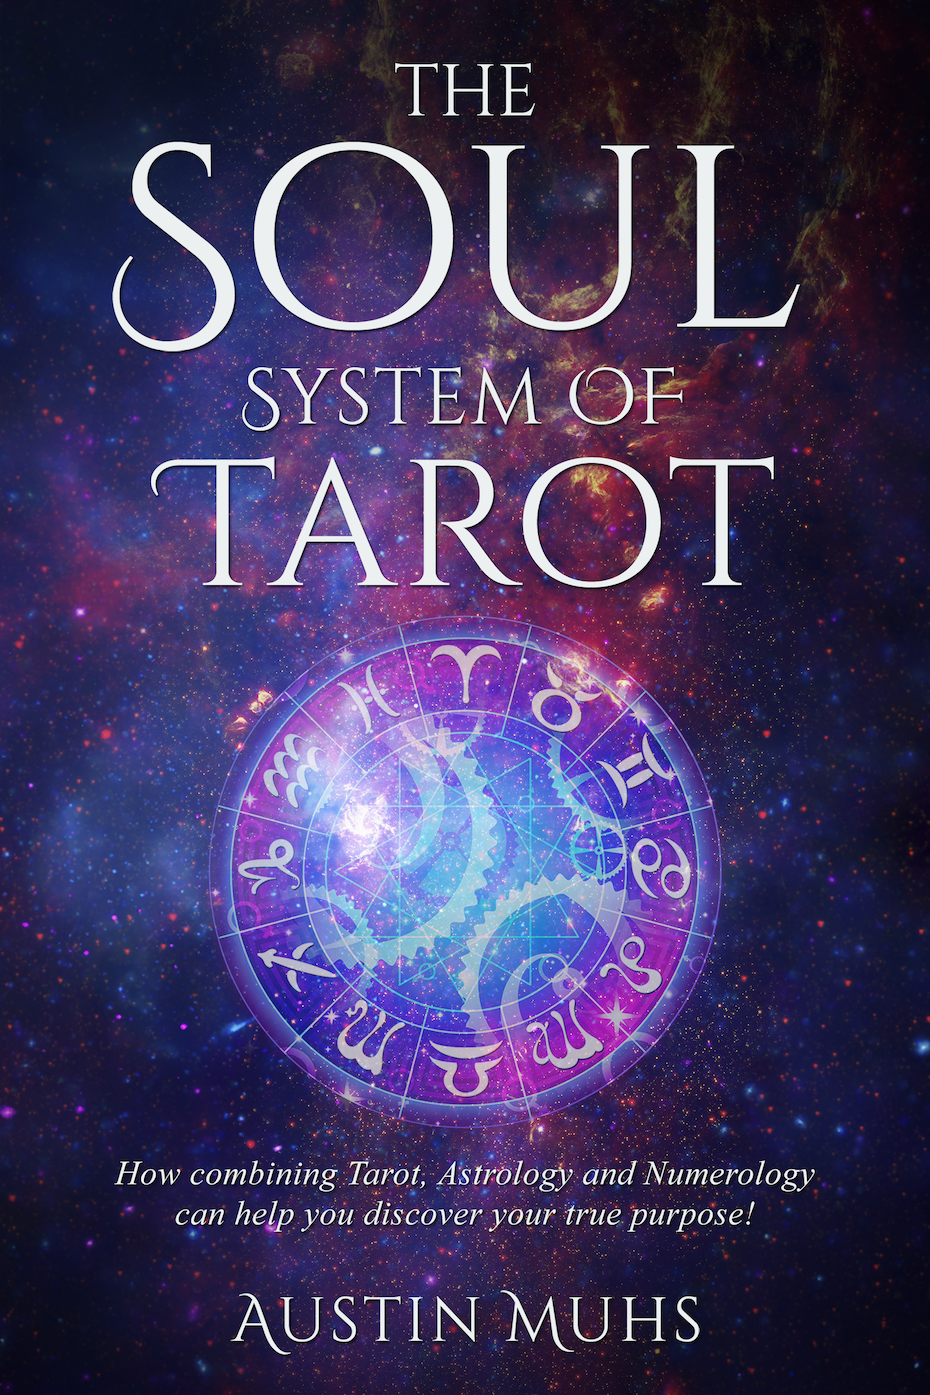 Blue, purple and pink book cover showing the wheel of the zodiac